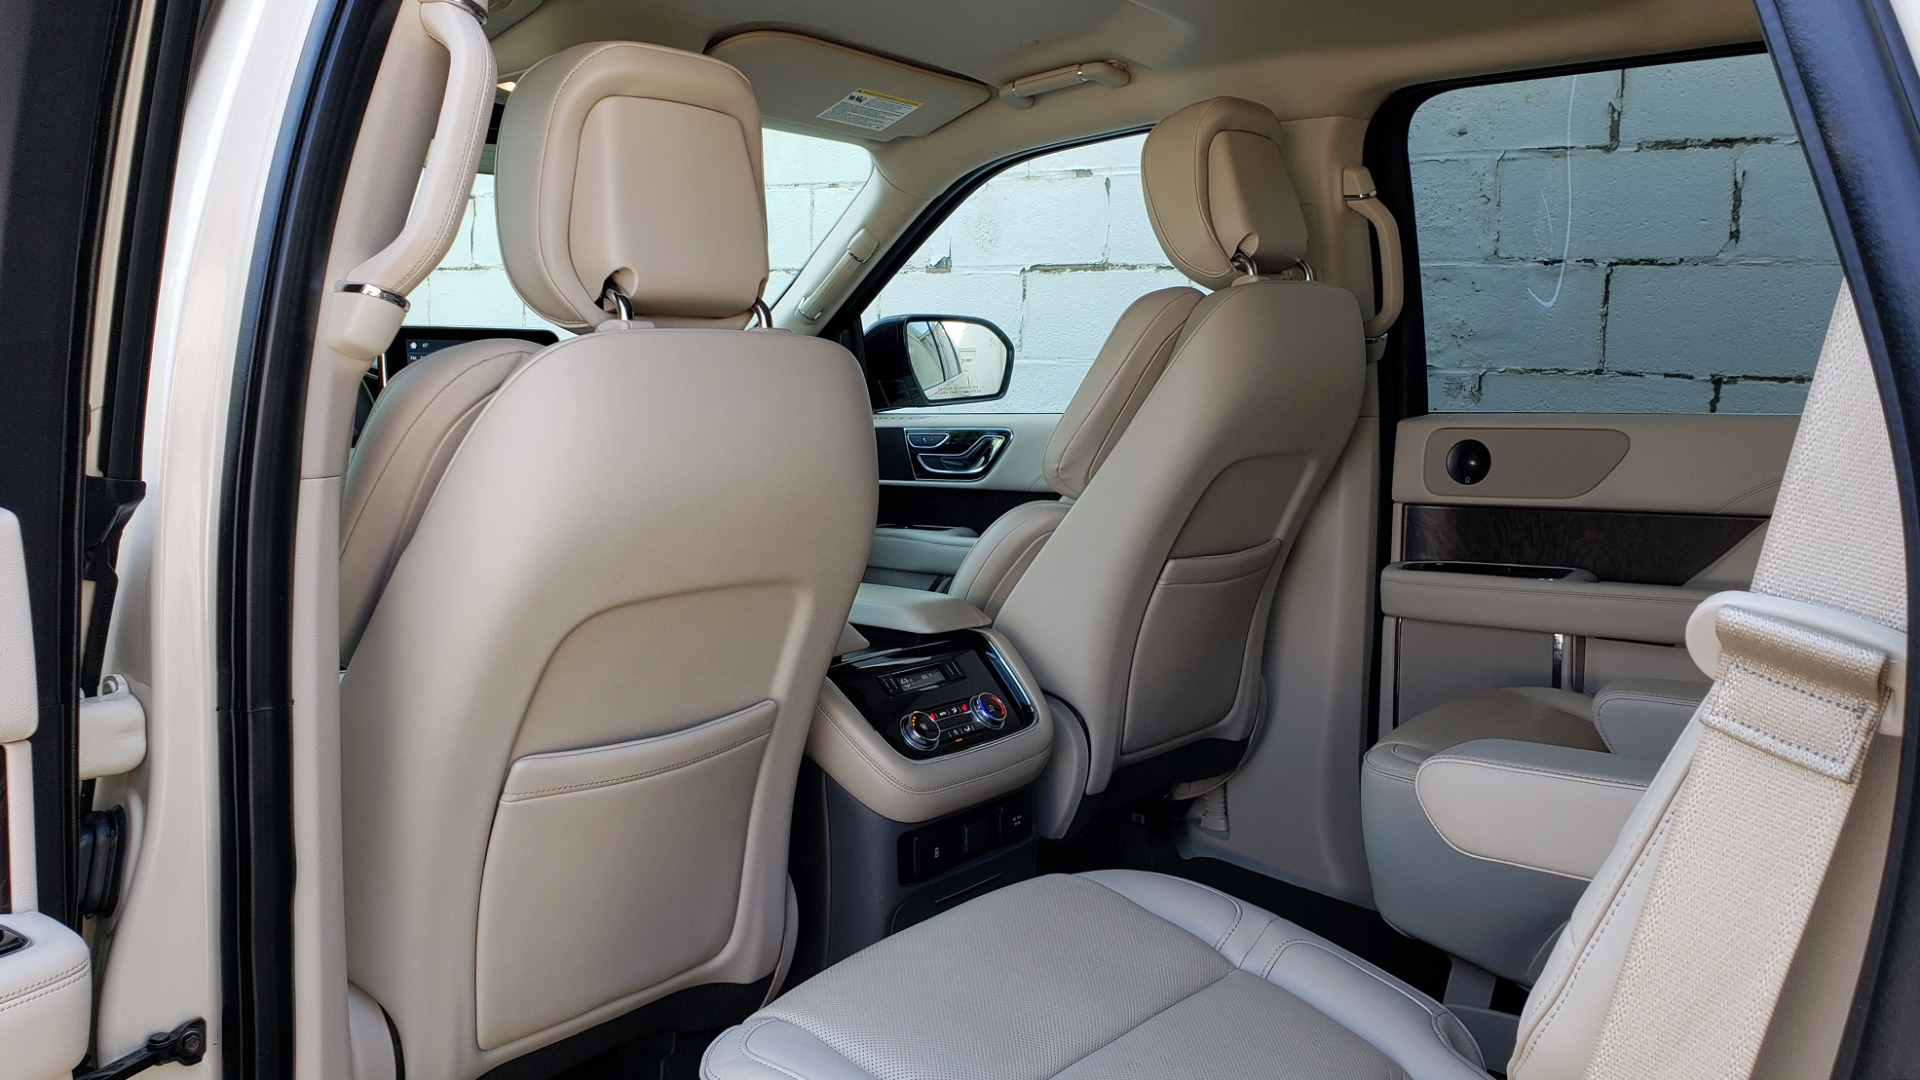 Used 2018 Lincoln NAVIGATOR PREMIERE 4X2 / TWIN-TURBO V6 / NAV / 3-ROW / REARVIEW for sale Sold at Formula Imports in Charlotte NC 28227 71